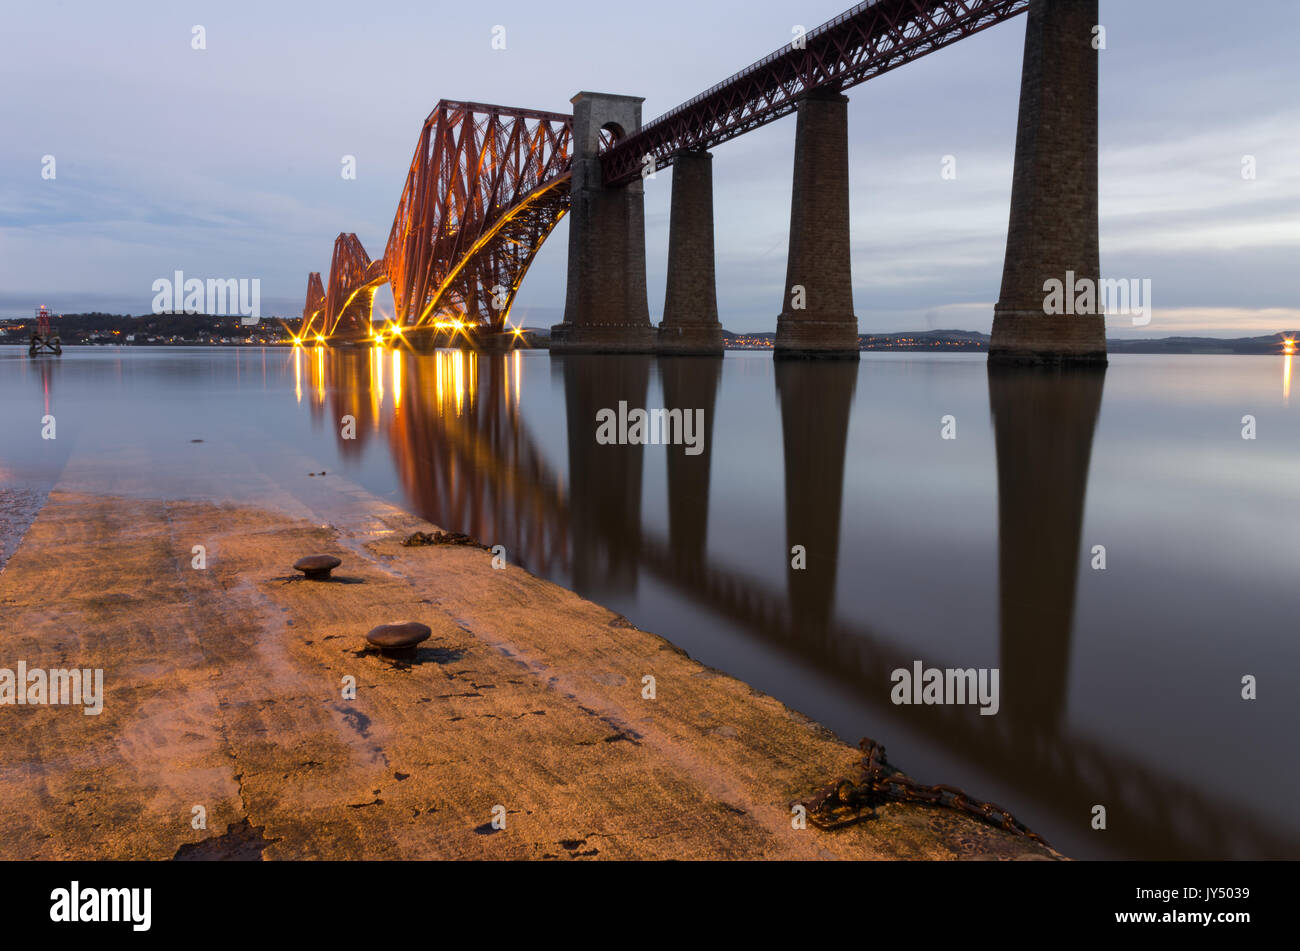 Dawn at the Forth Rail Bridge, South Queensferry, Firth of Forth, Scotland - Stock Image